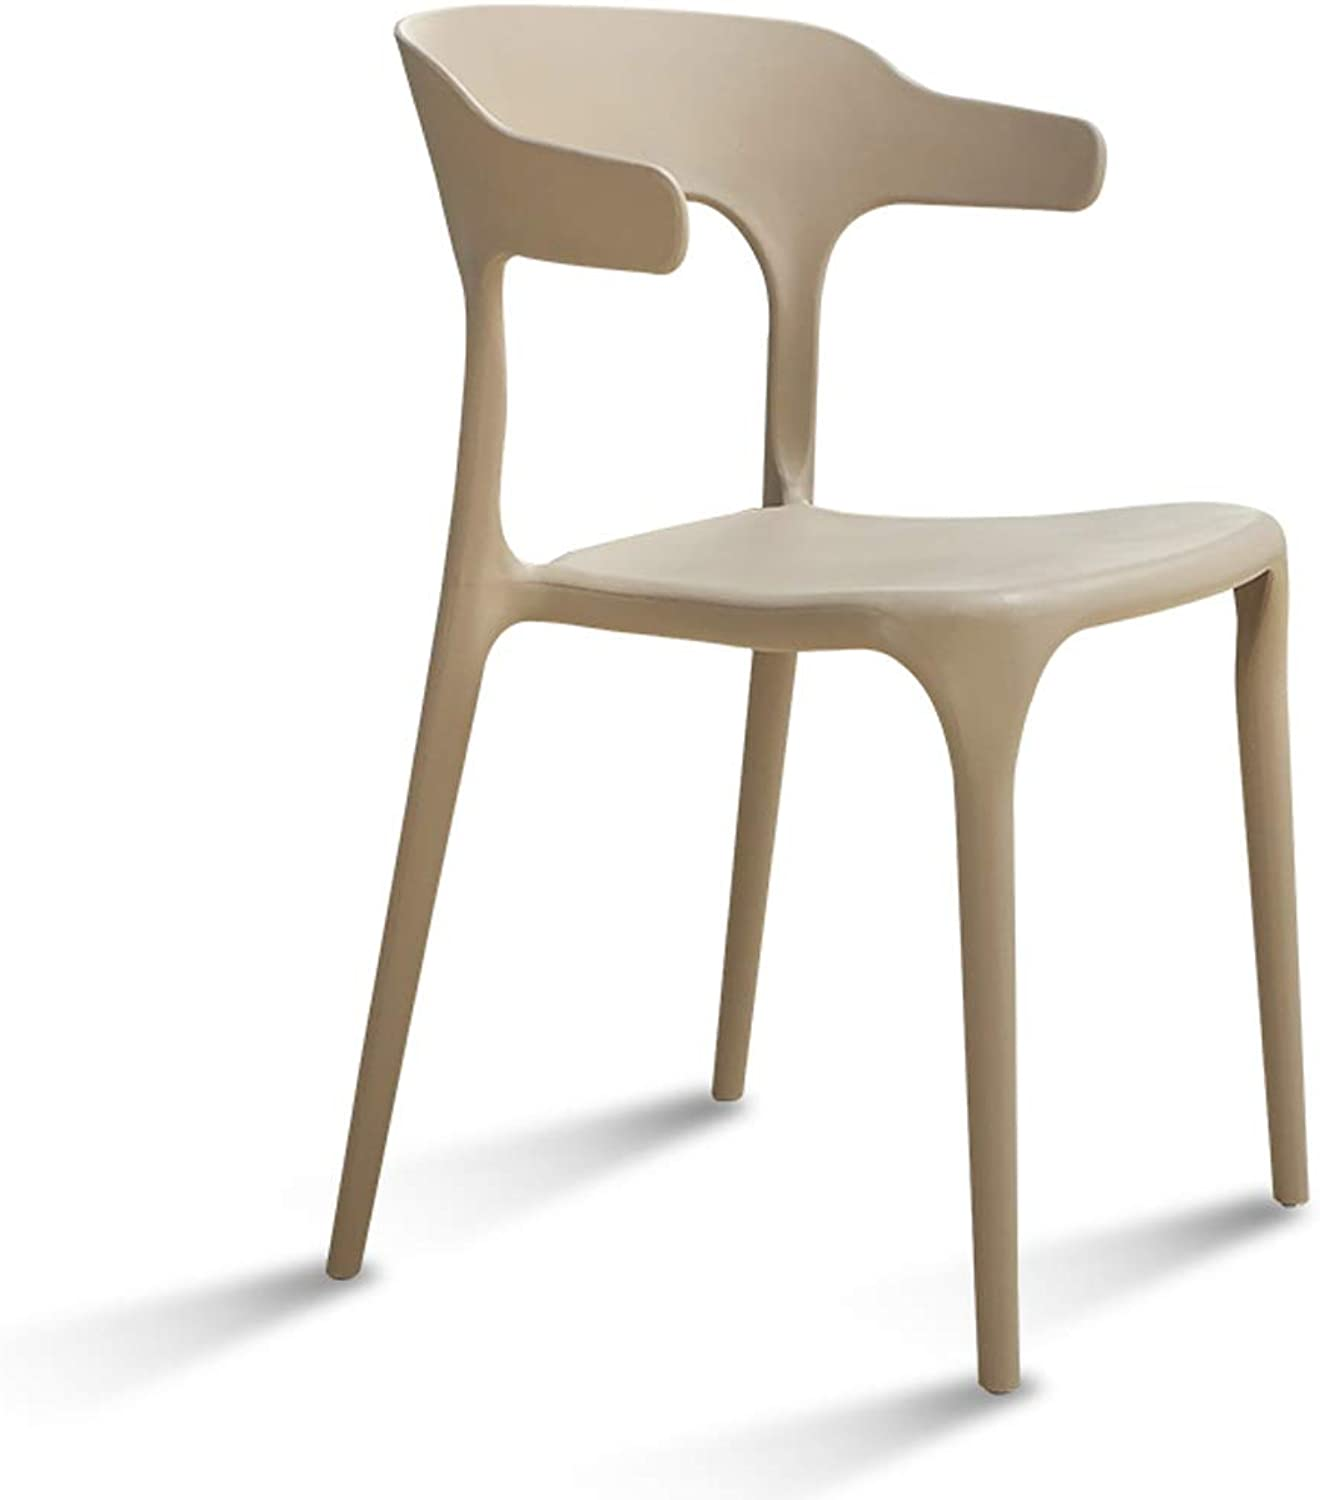 LRW Modern Simple Plastic Dining Chair, Nordic Fashion Leisure Chair Restaurant, Creative Backrest Stool